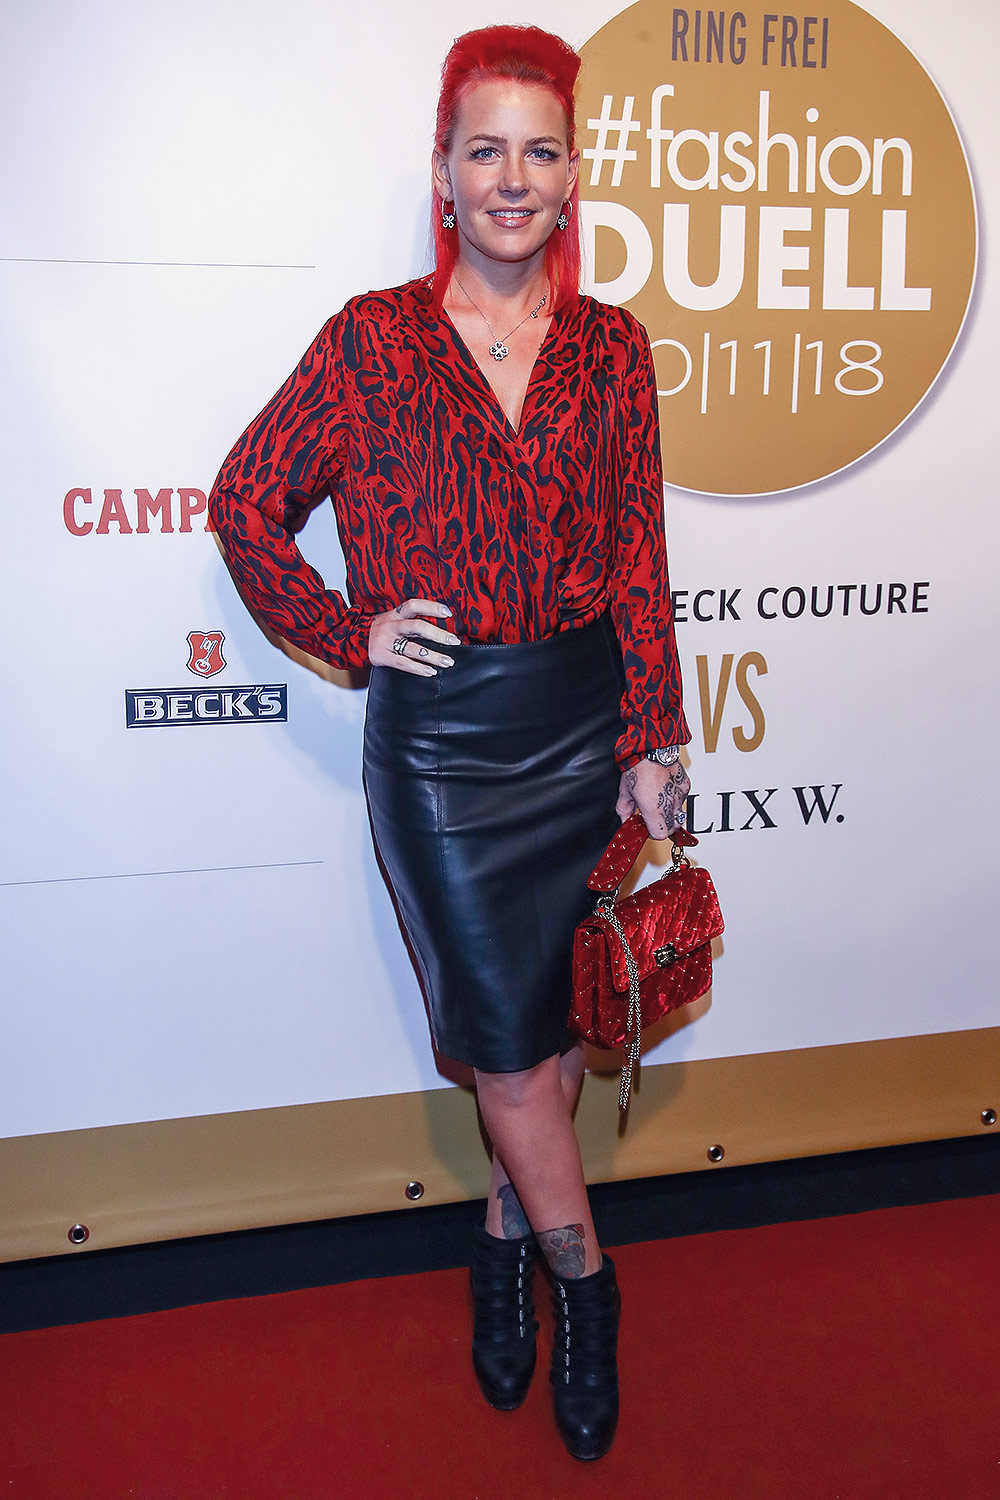 Dana Diekmeier attends Fashion-Duell Ella Deck Couture vs Felix W